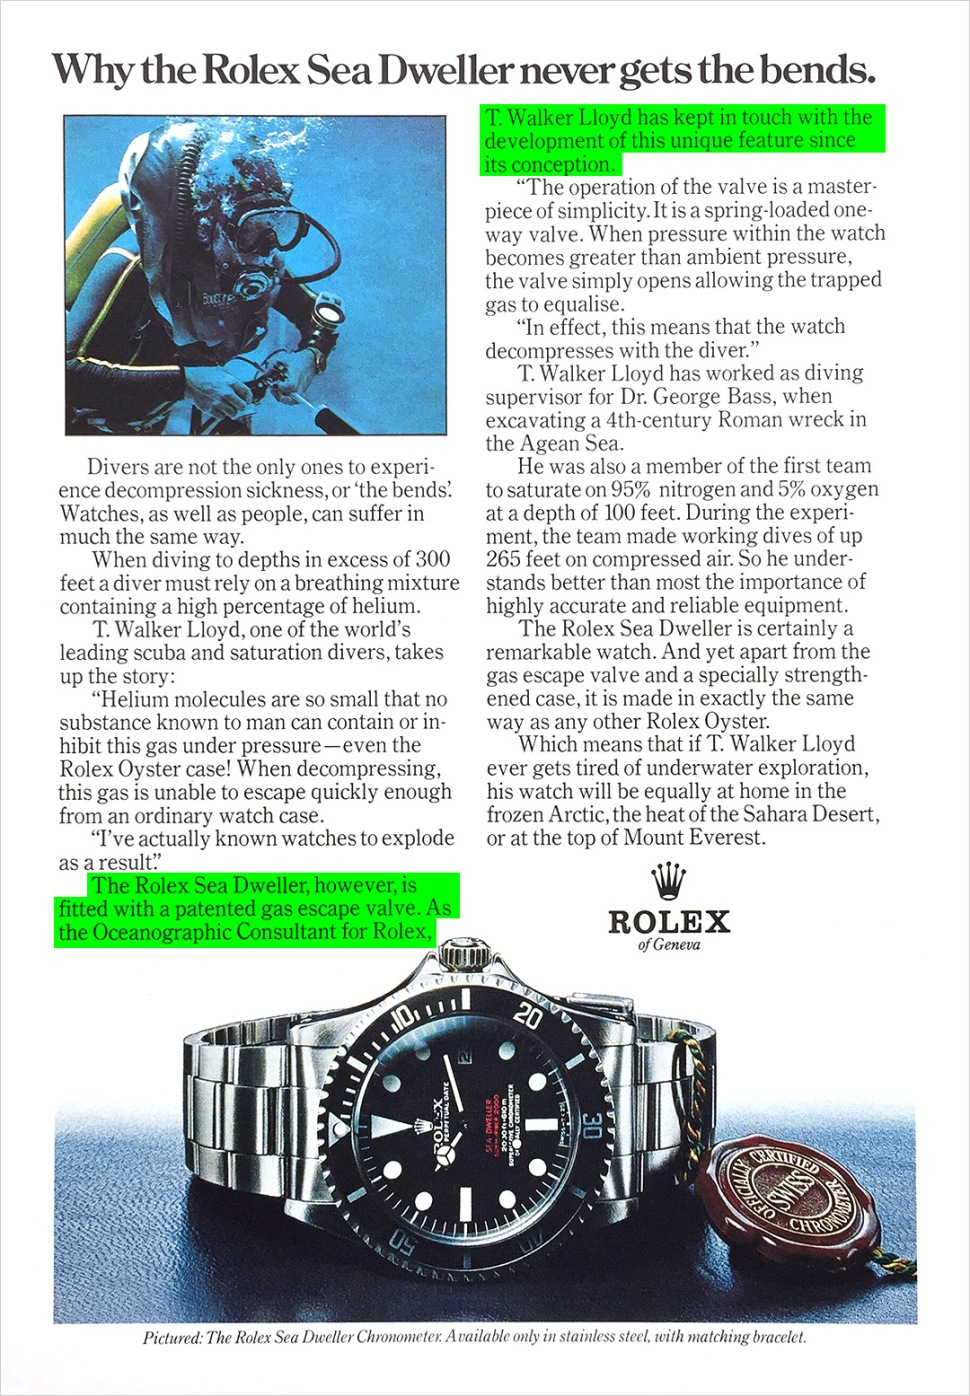 200510-rolex-ad-sea-dweller-1665-t-walker-lloyd-hilited